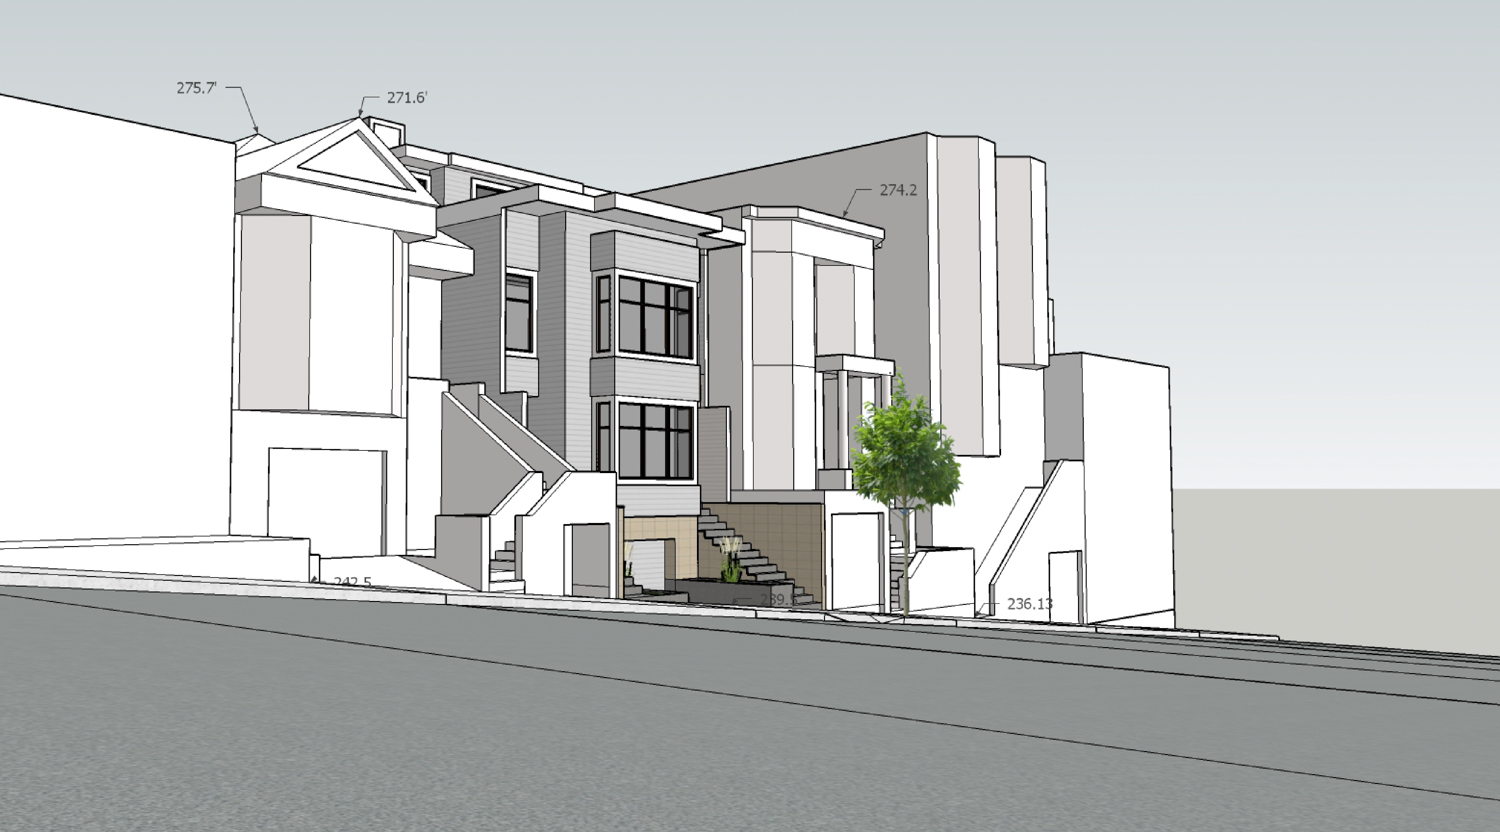 4234 24th Street view from across the street, rendering by E.E. Weiss Architects